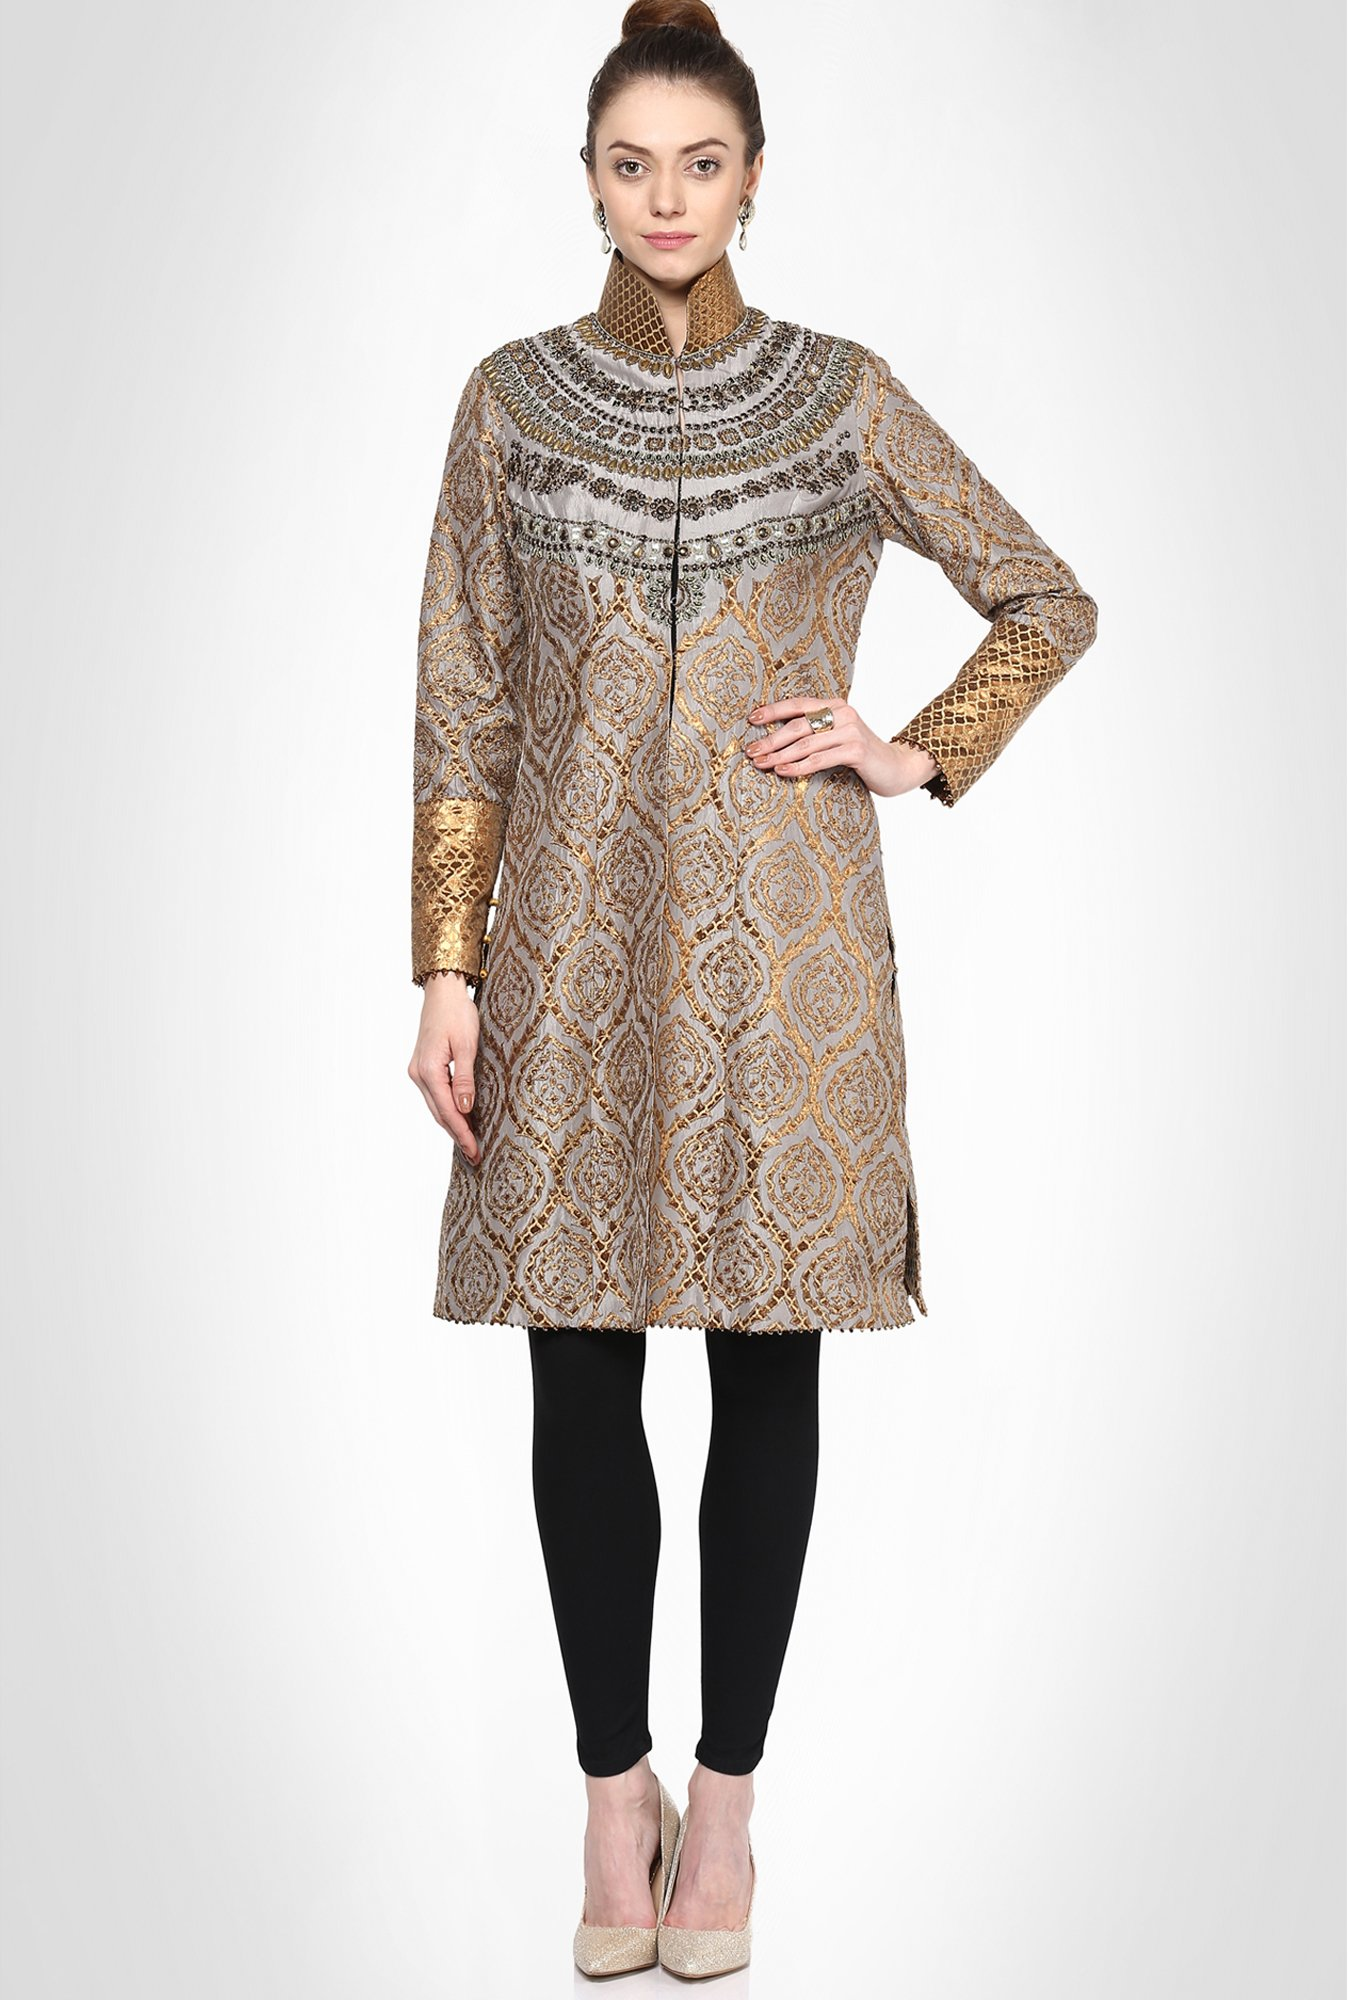 Jj Valaya Designer Wear Grey Gota Patti Kurta By Kimaya